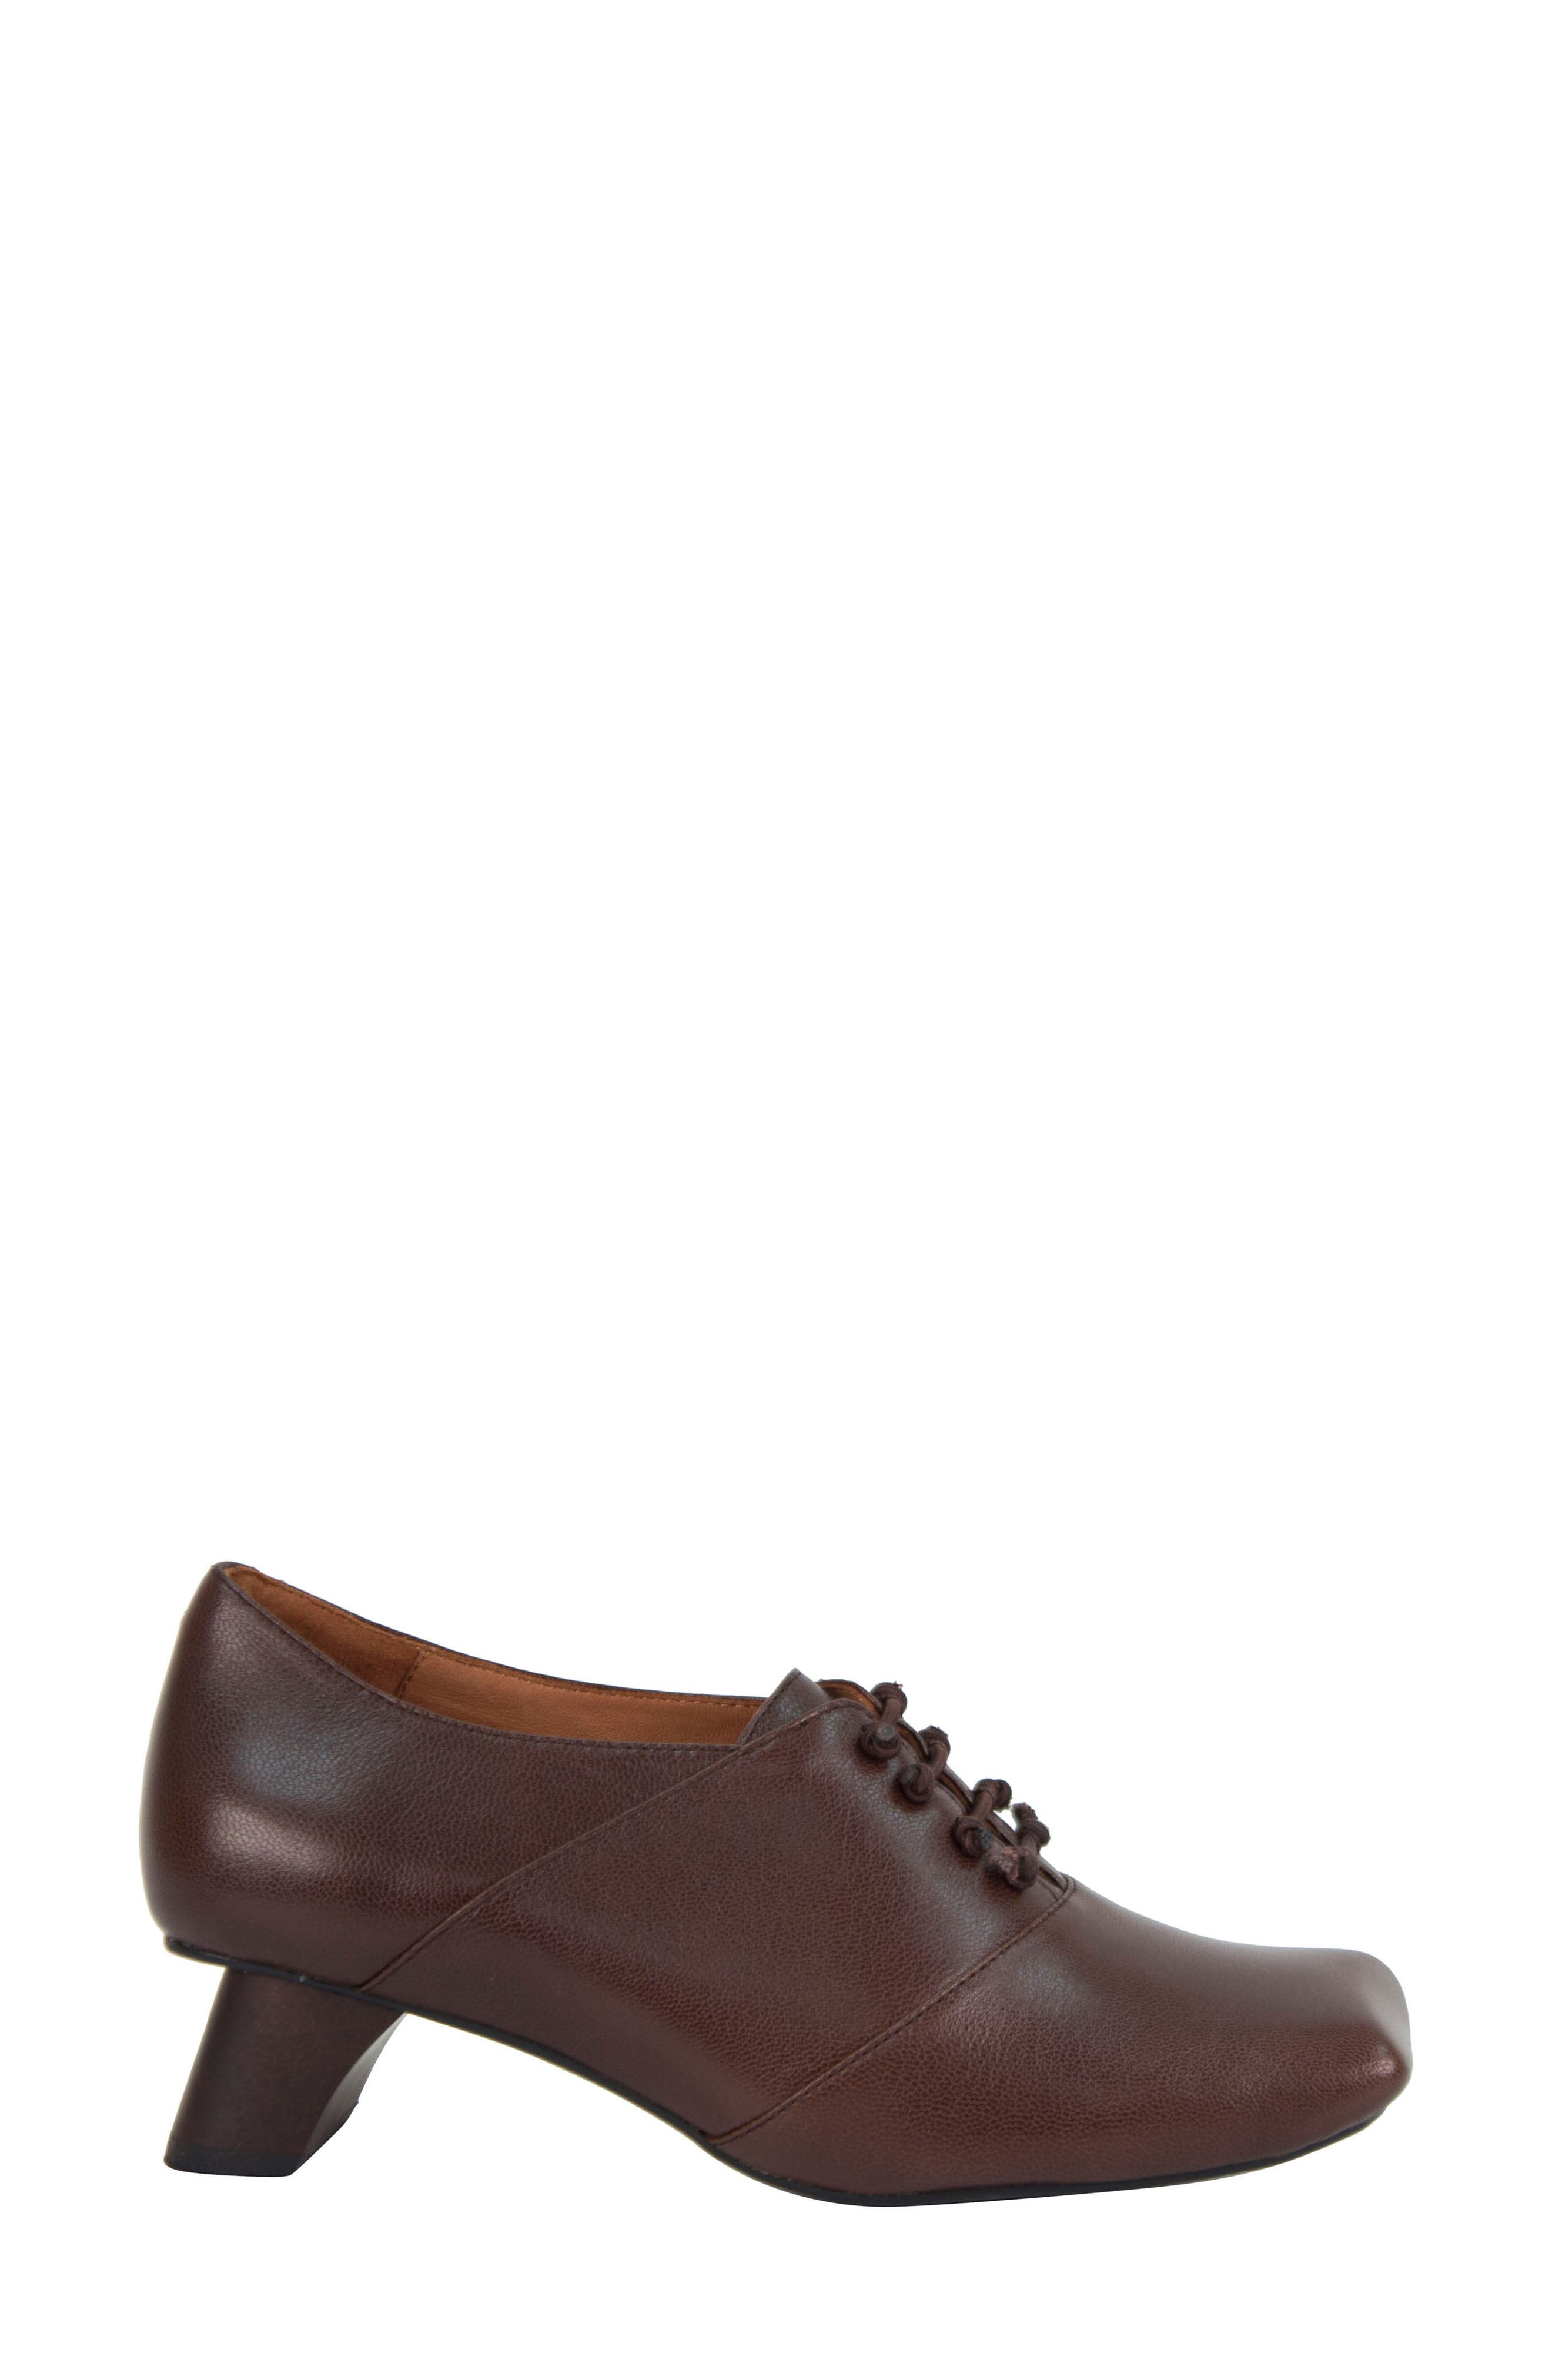 Winifred Lace-Up Bootie,                             Alternate thumbnail 3, color,                             Moro Leather